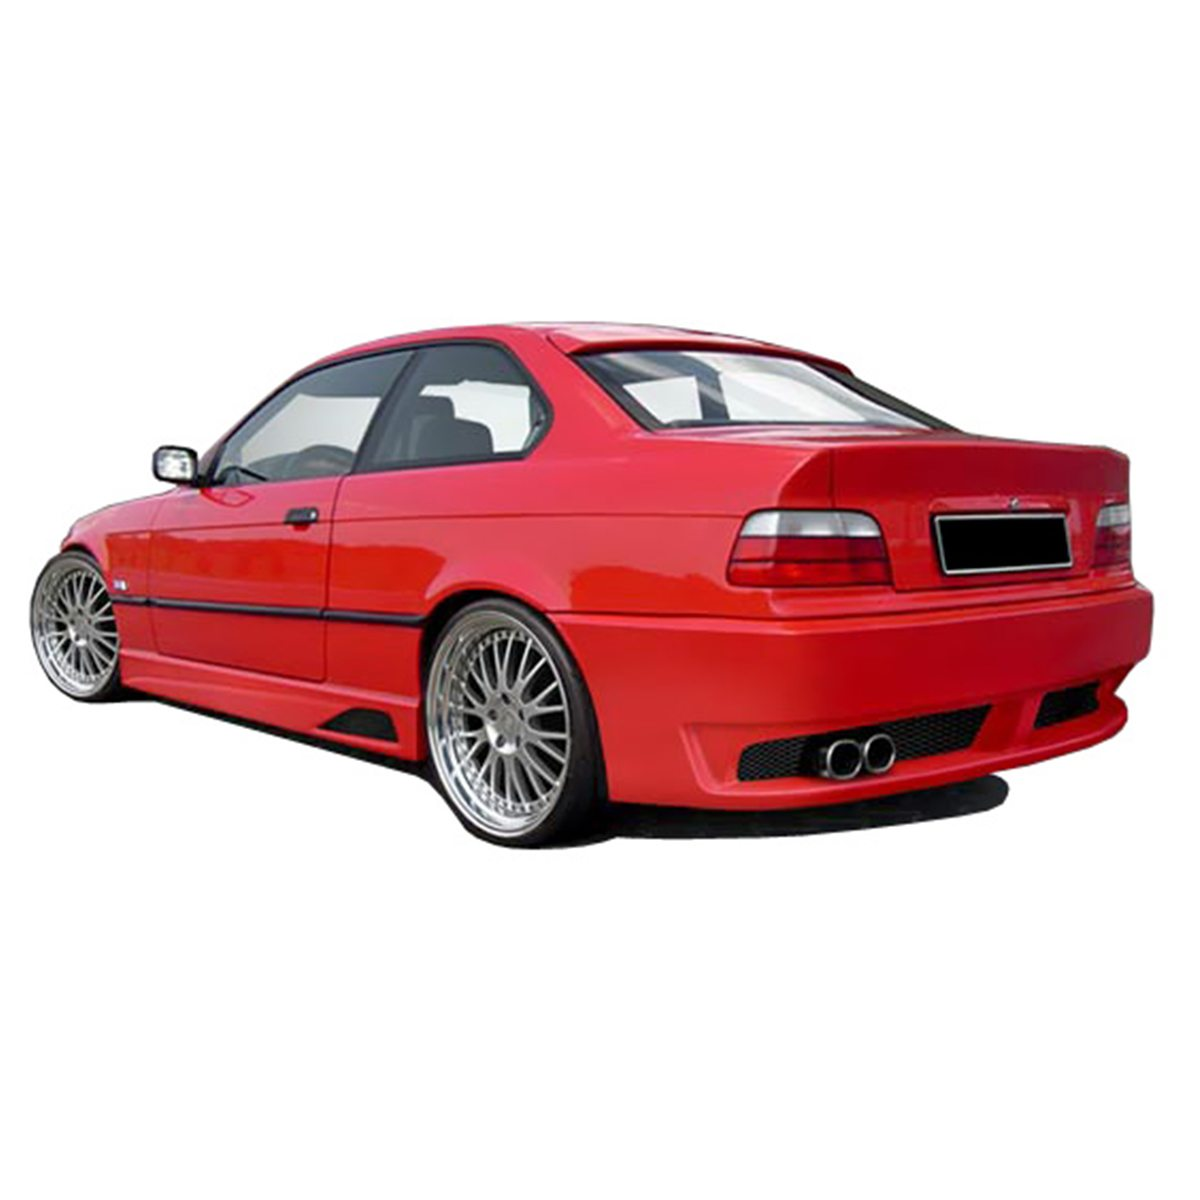 BMW-E36-Coupe-Tension-Tras-PCS025